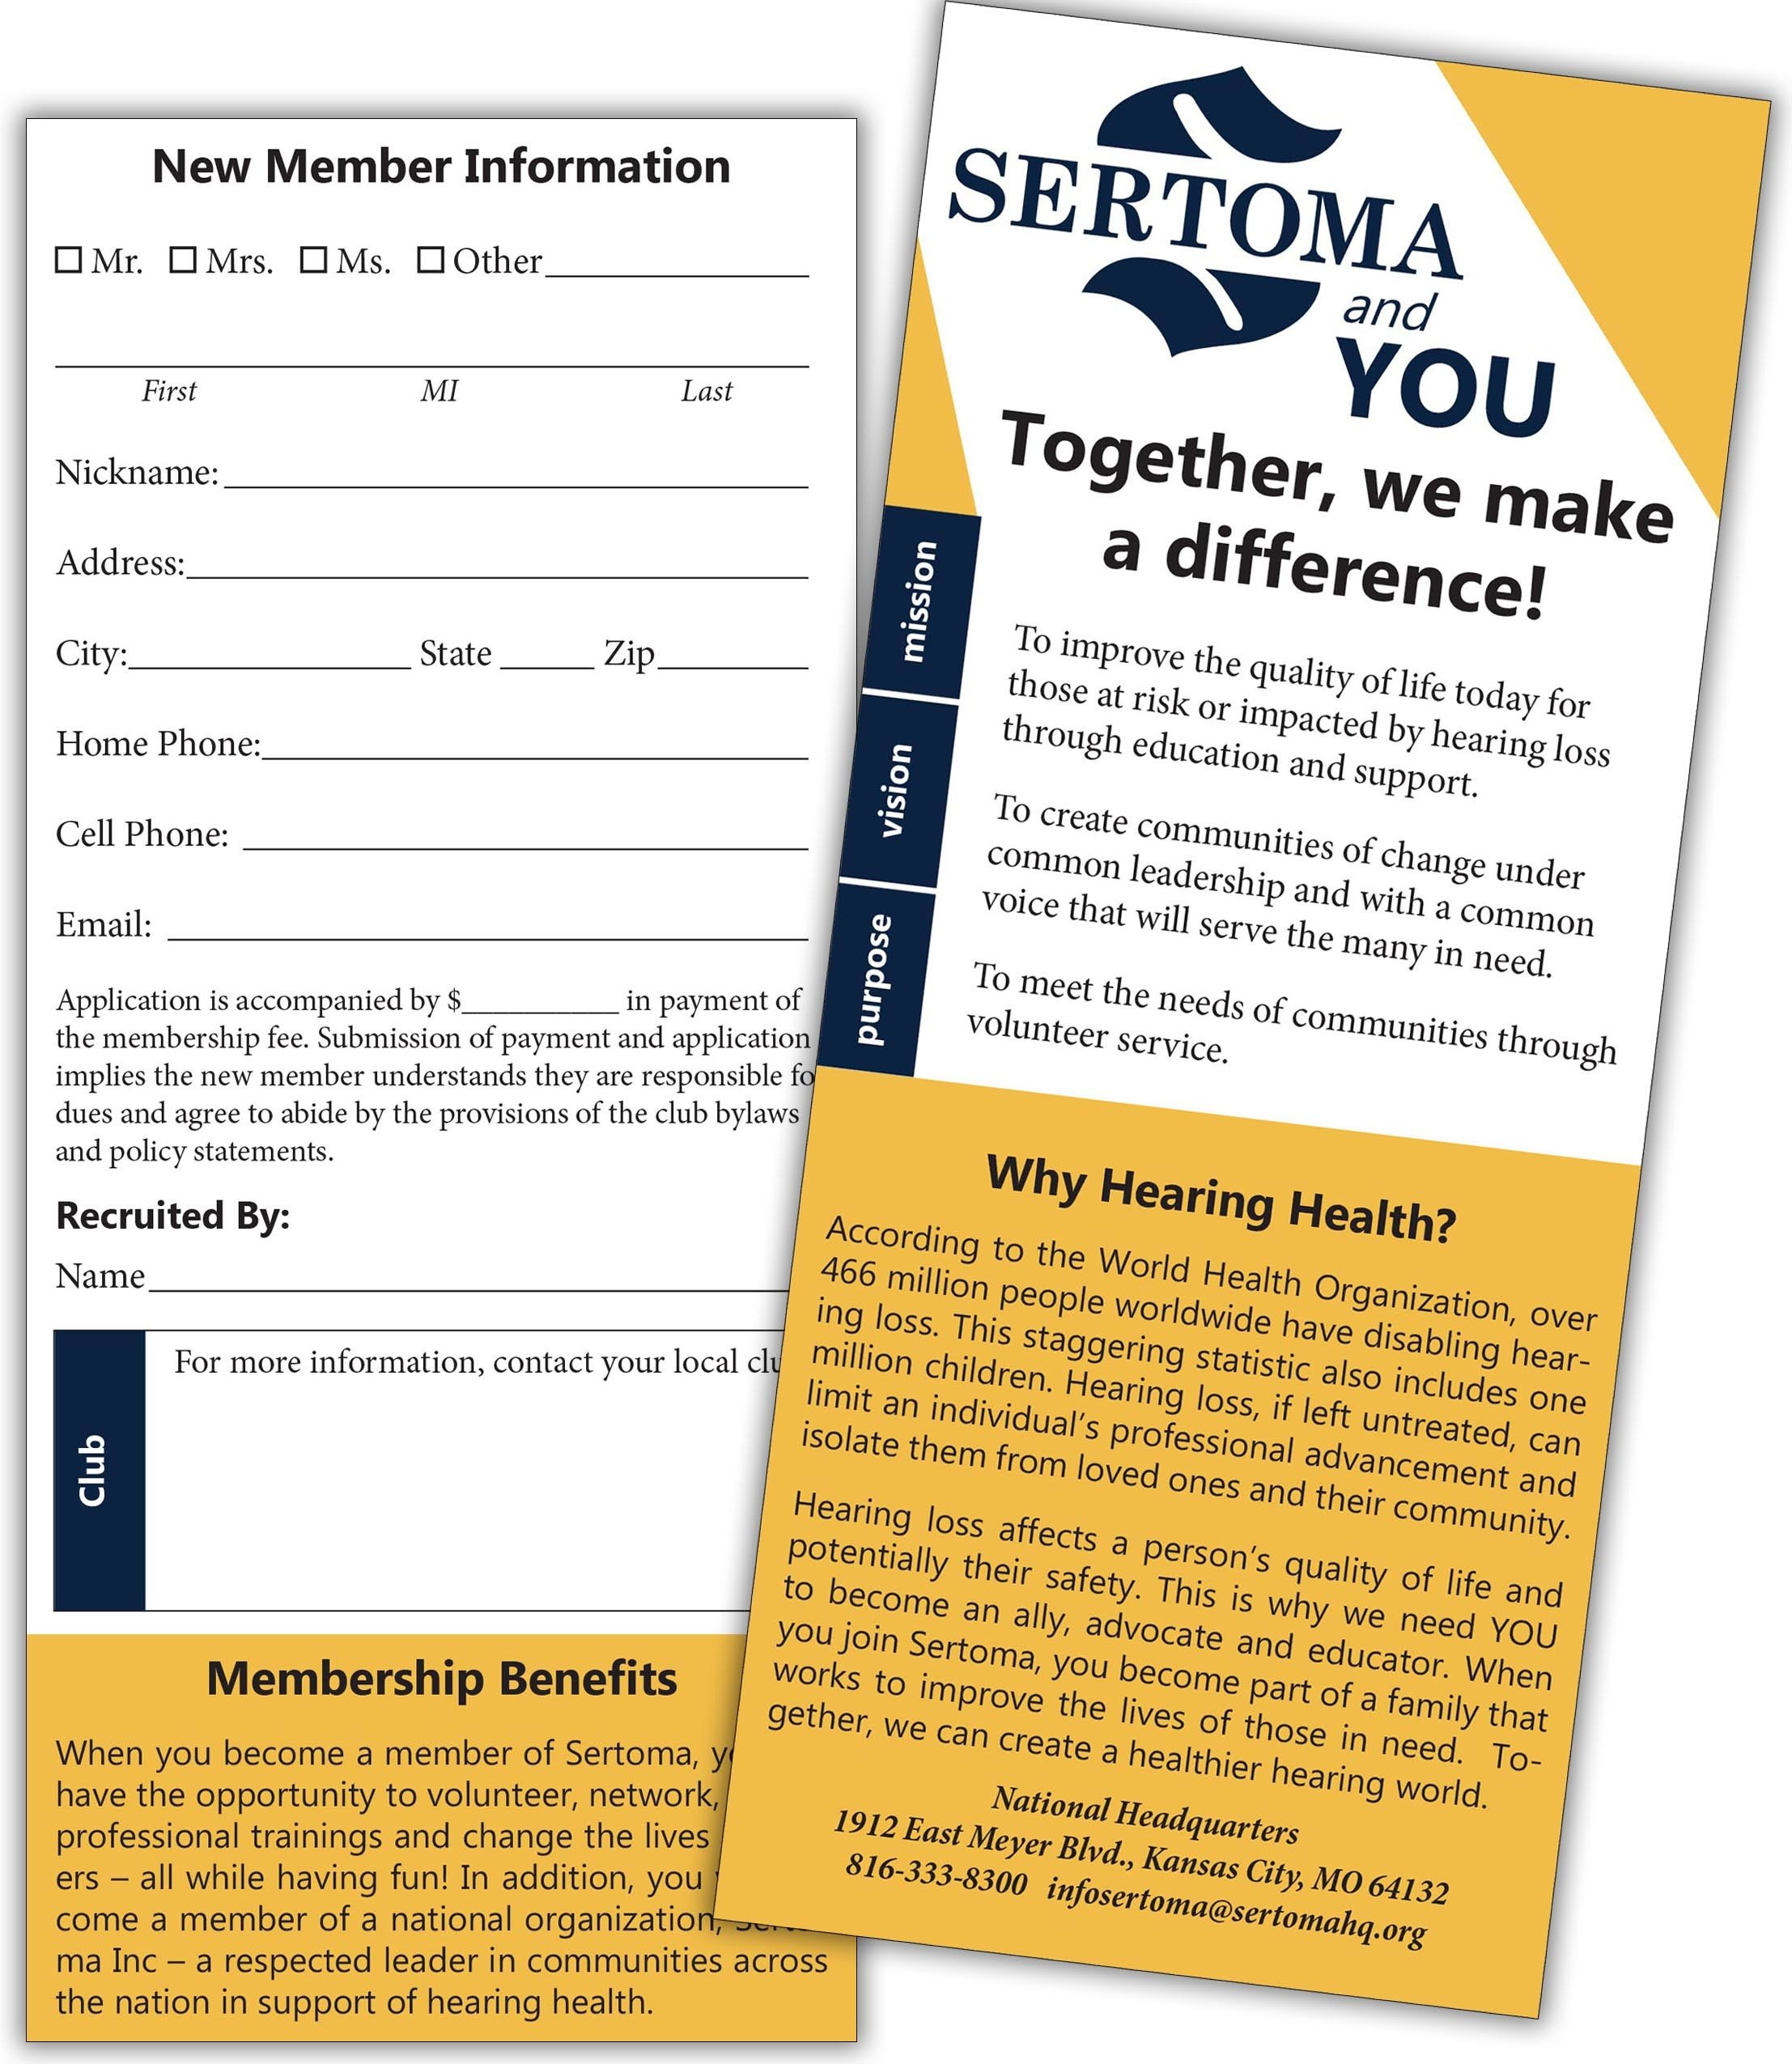 Sertoma Rack Card 1140